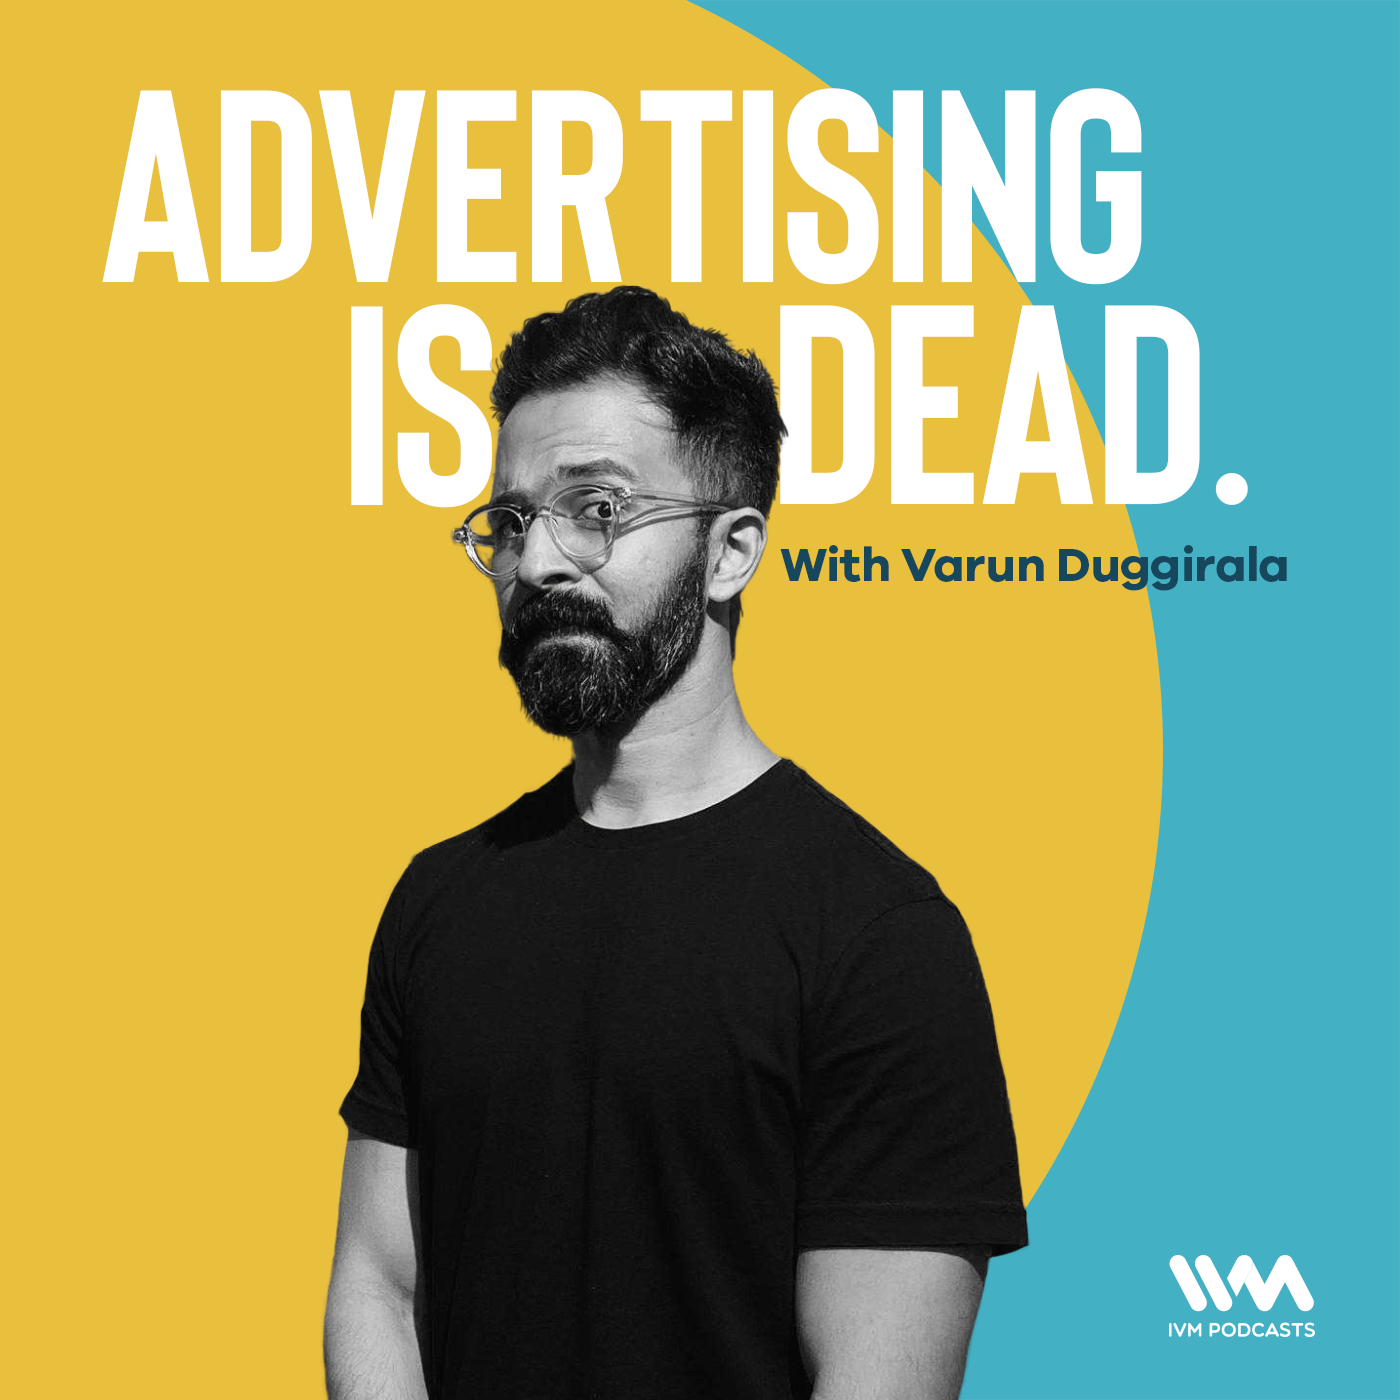 Advertising is dead Podcast logo